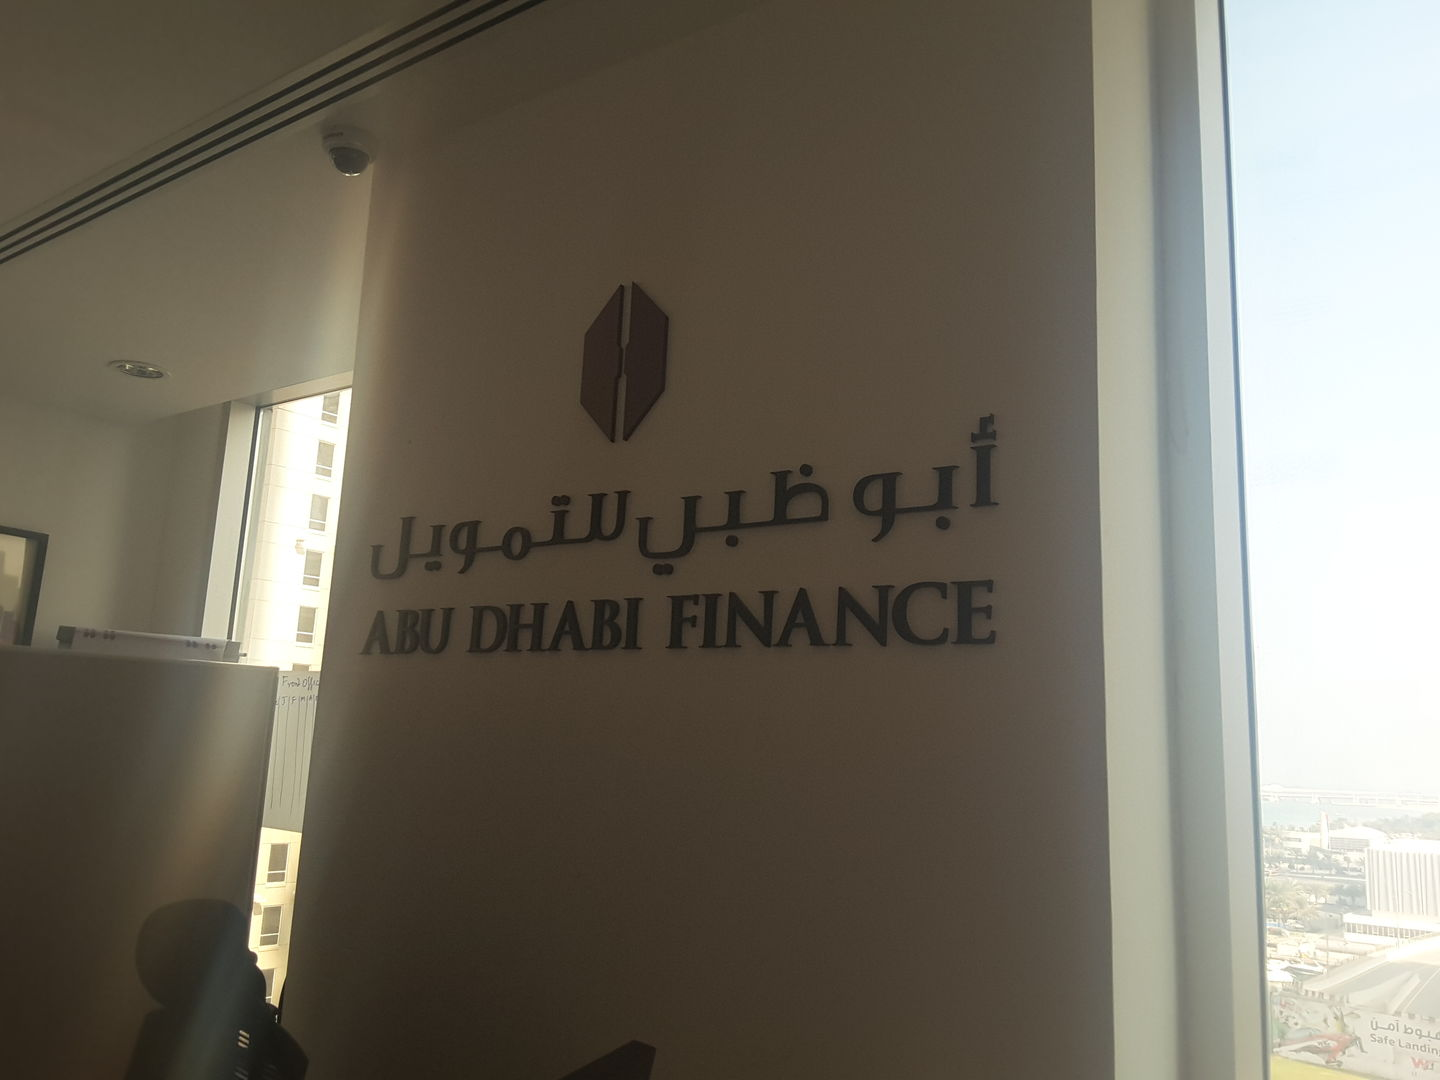 HiDubai-business-abu-dhabi-finance-finance-legal-financial-services-dubai-marina-marsa-dubai-dubai-2